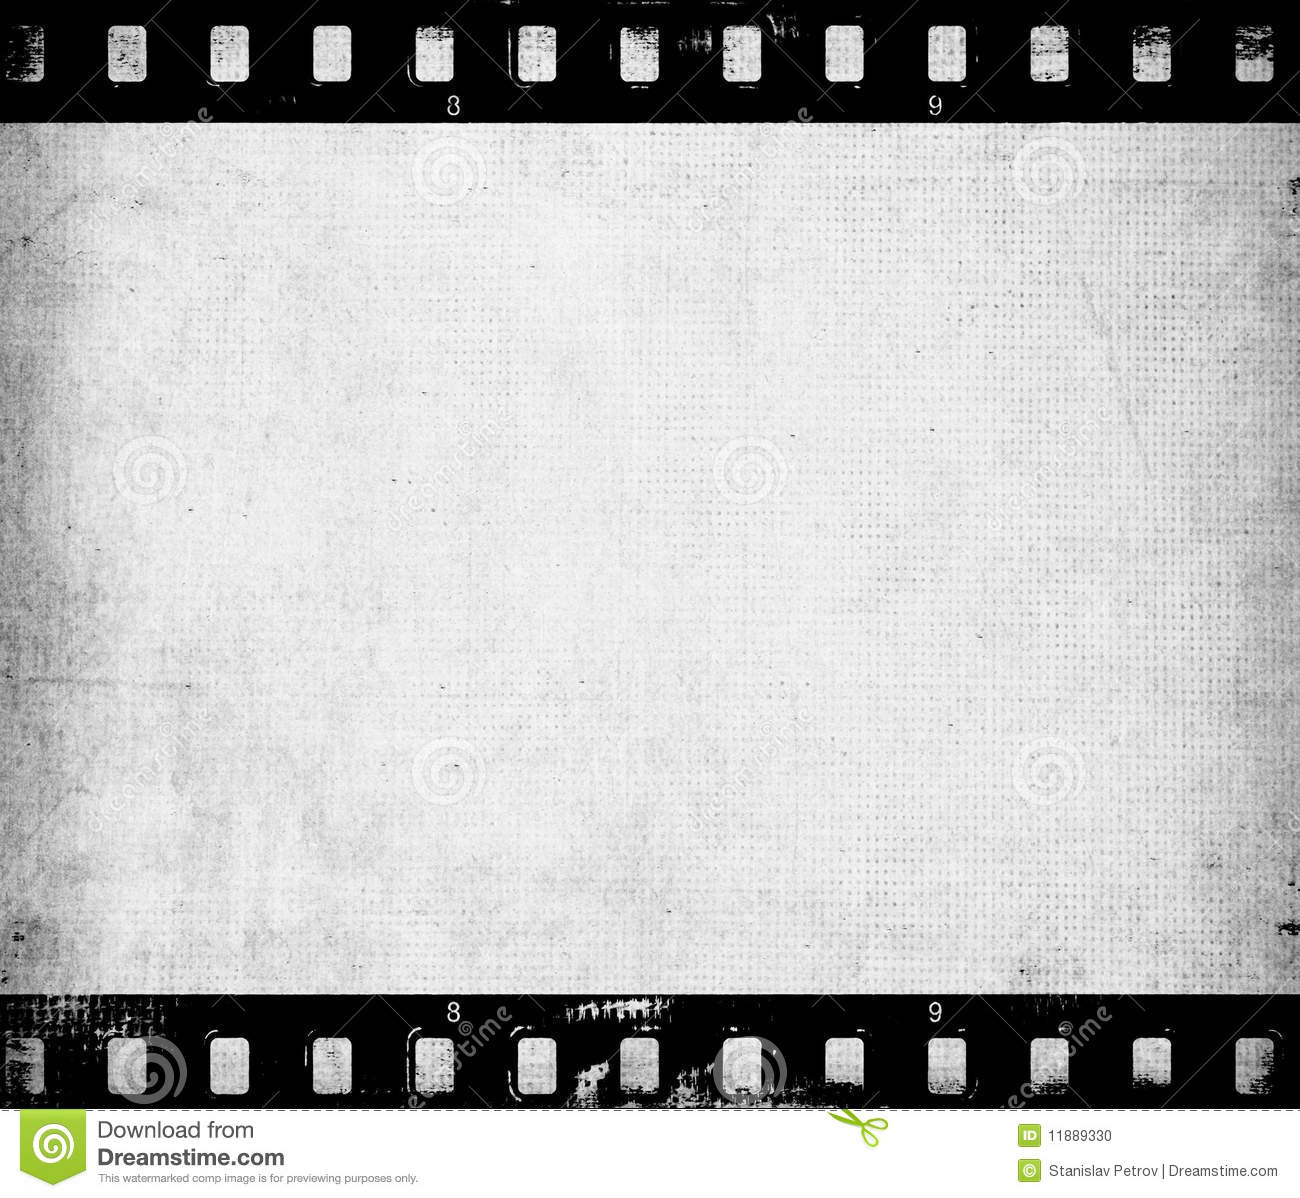 movie film strip background, pc movie film strip background most, Powerpoint templates